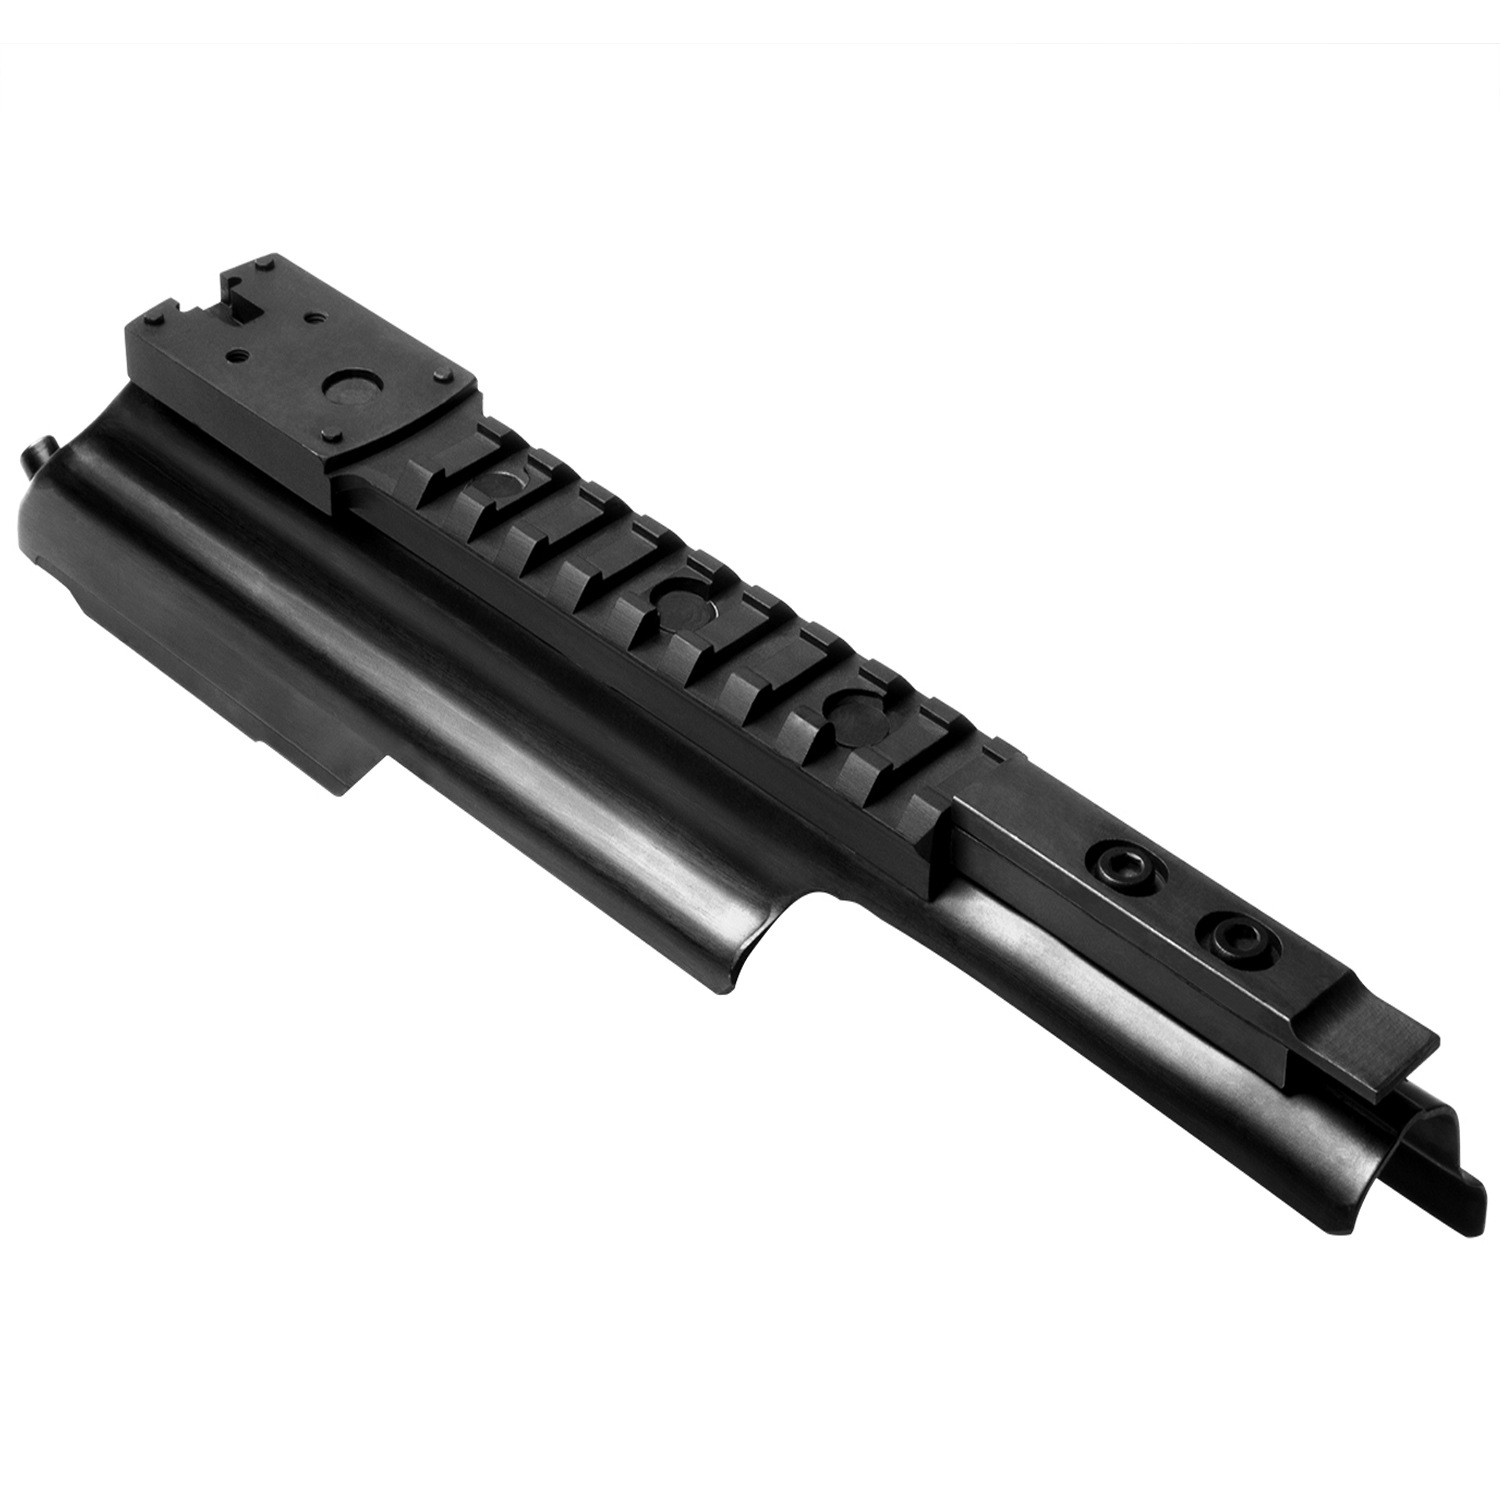 Ncstar Top Cover Mount Designed For Micro Dot Sight